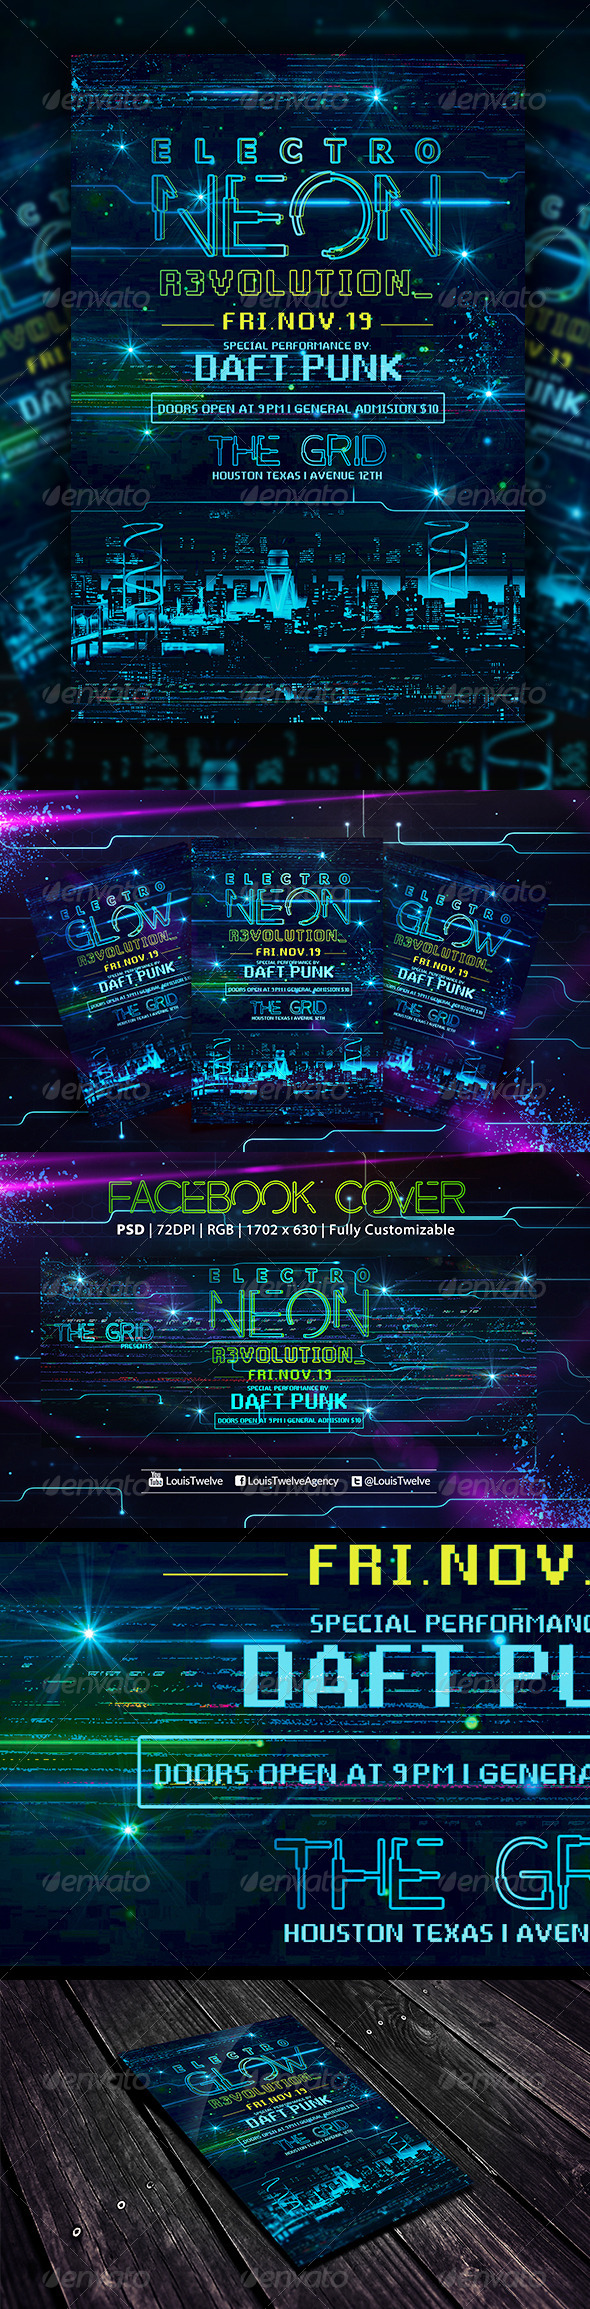 Electro Neon | Flyer + Fb Cover - Events Flyers